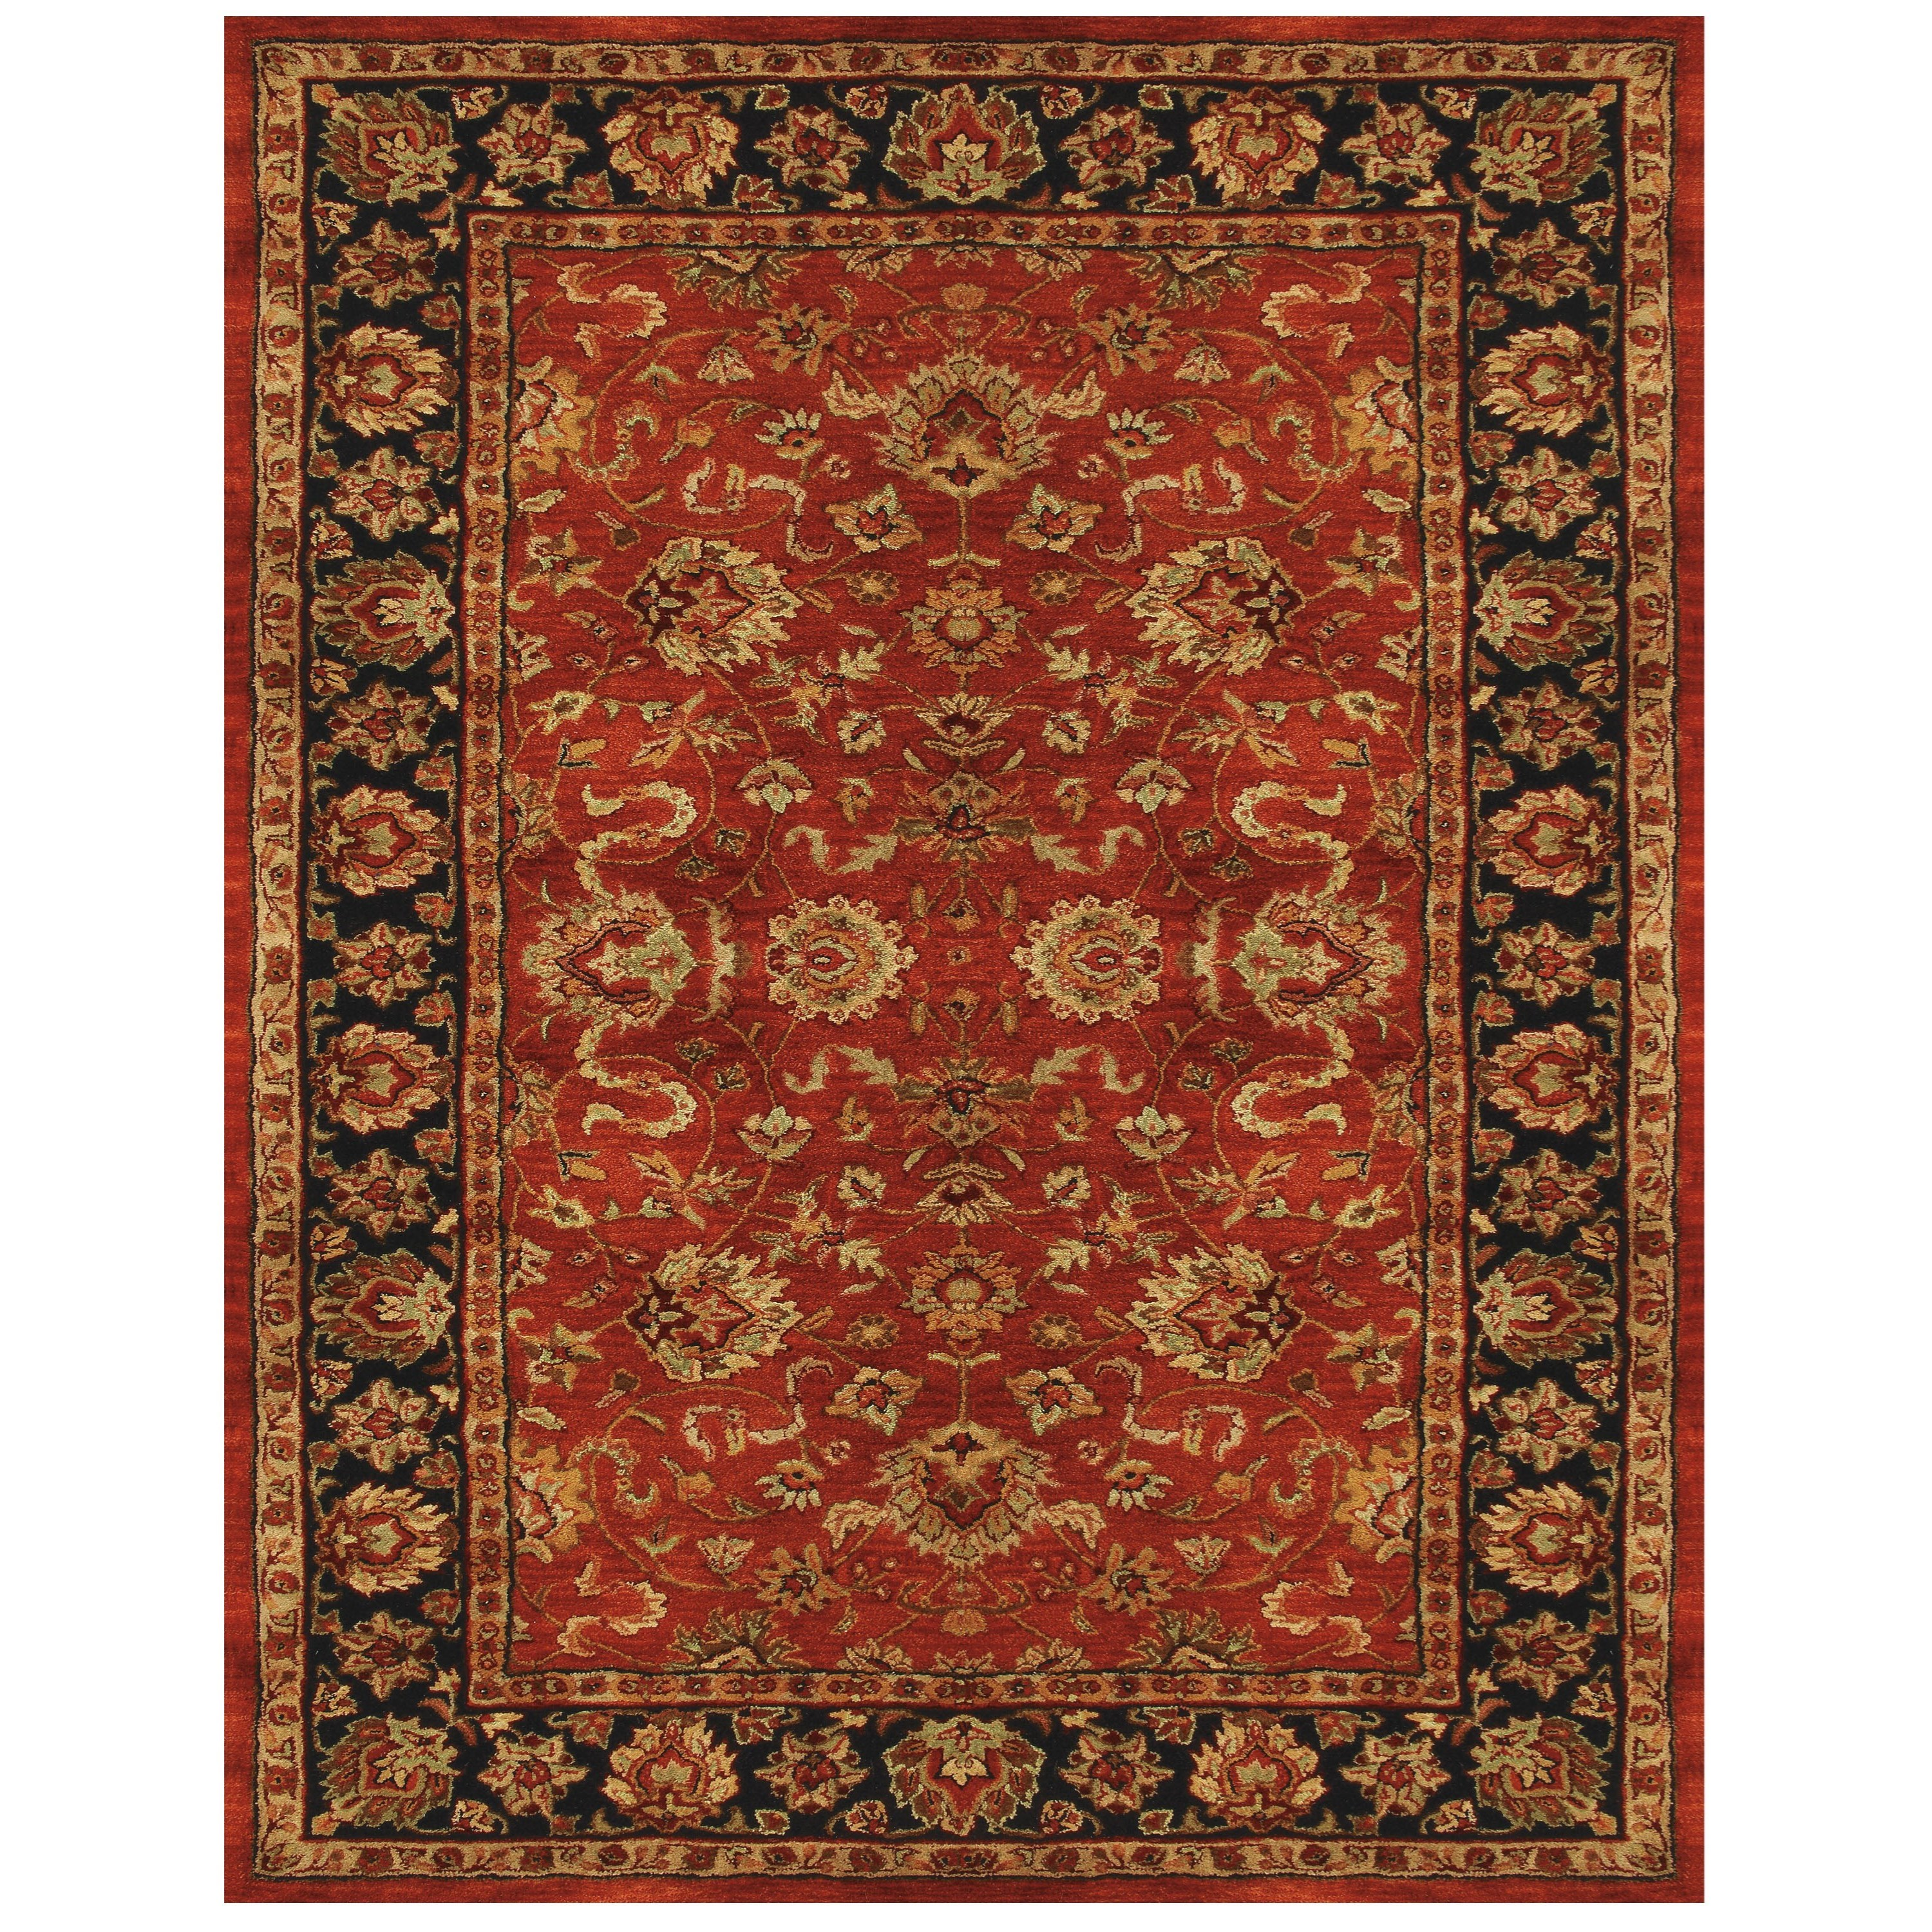 Alexandra Red/Navy 8' X 11' Area Rug by Feizy Rugs at Sprintz Furniture